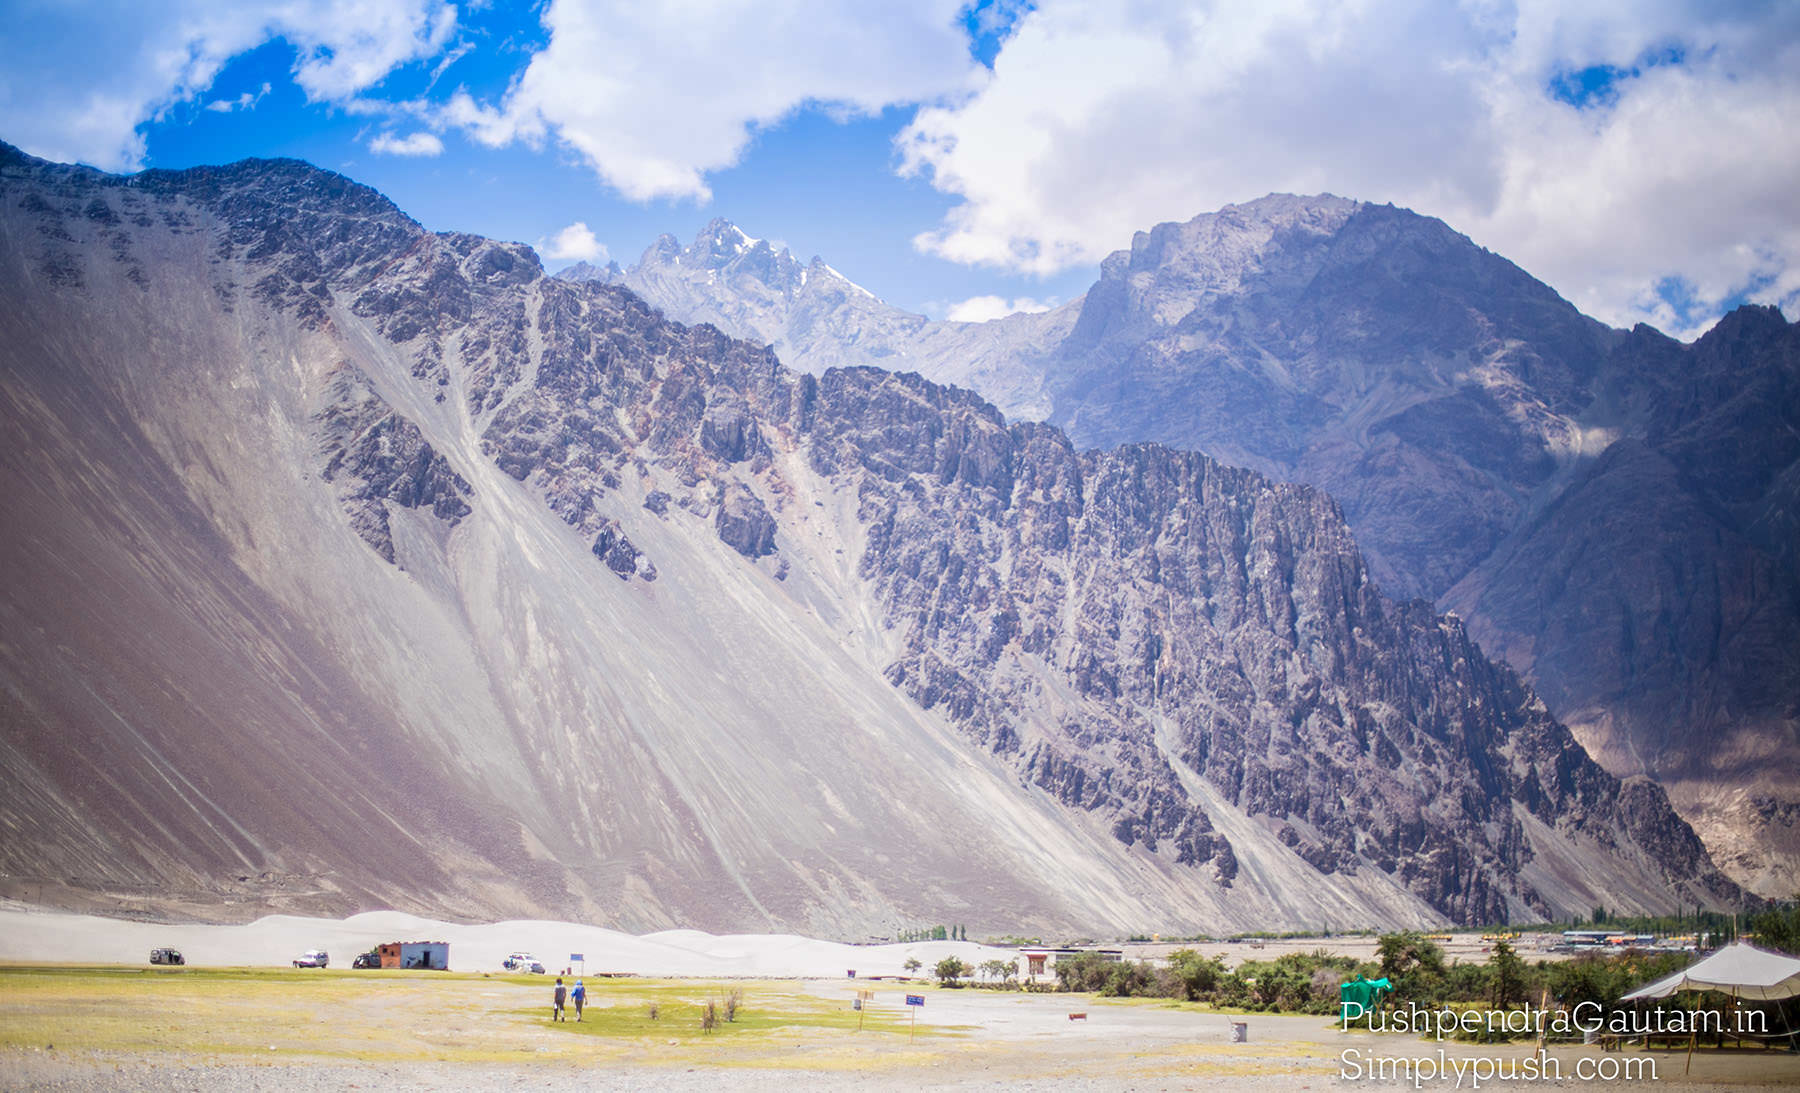 Leh-manali-road-trip-pics-manali-leh-route-plan-how-to-plan-a-trip-to-leh-manali-highway-on-bike-pushpendragautam-pics-event-photographer-india